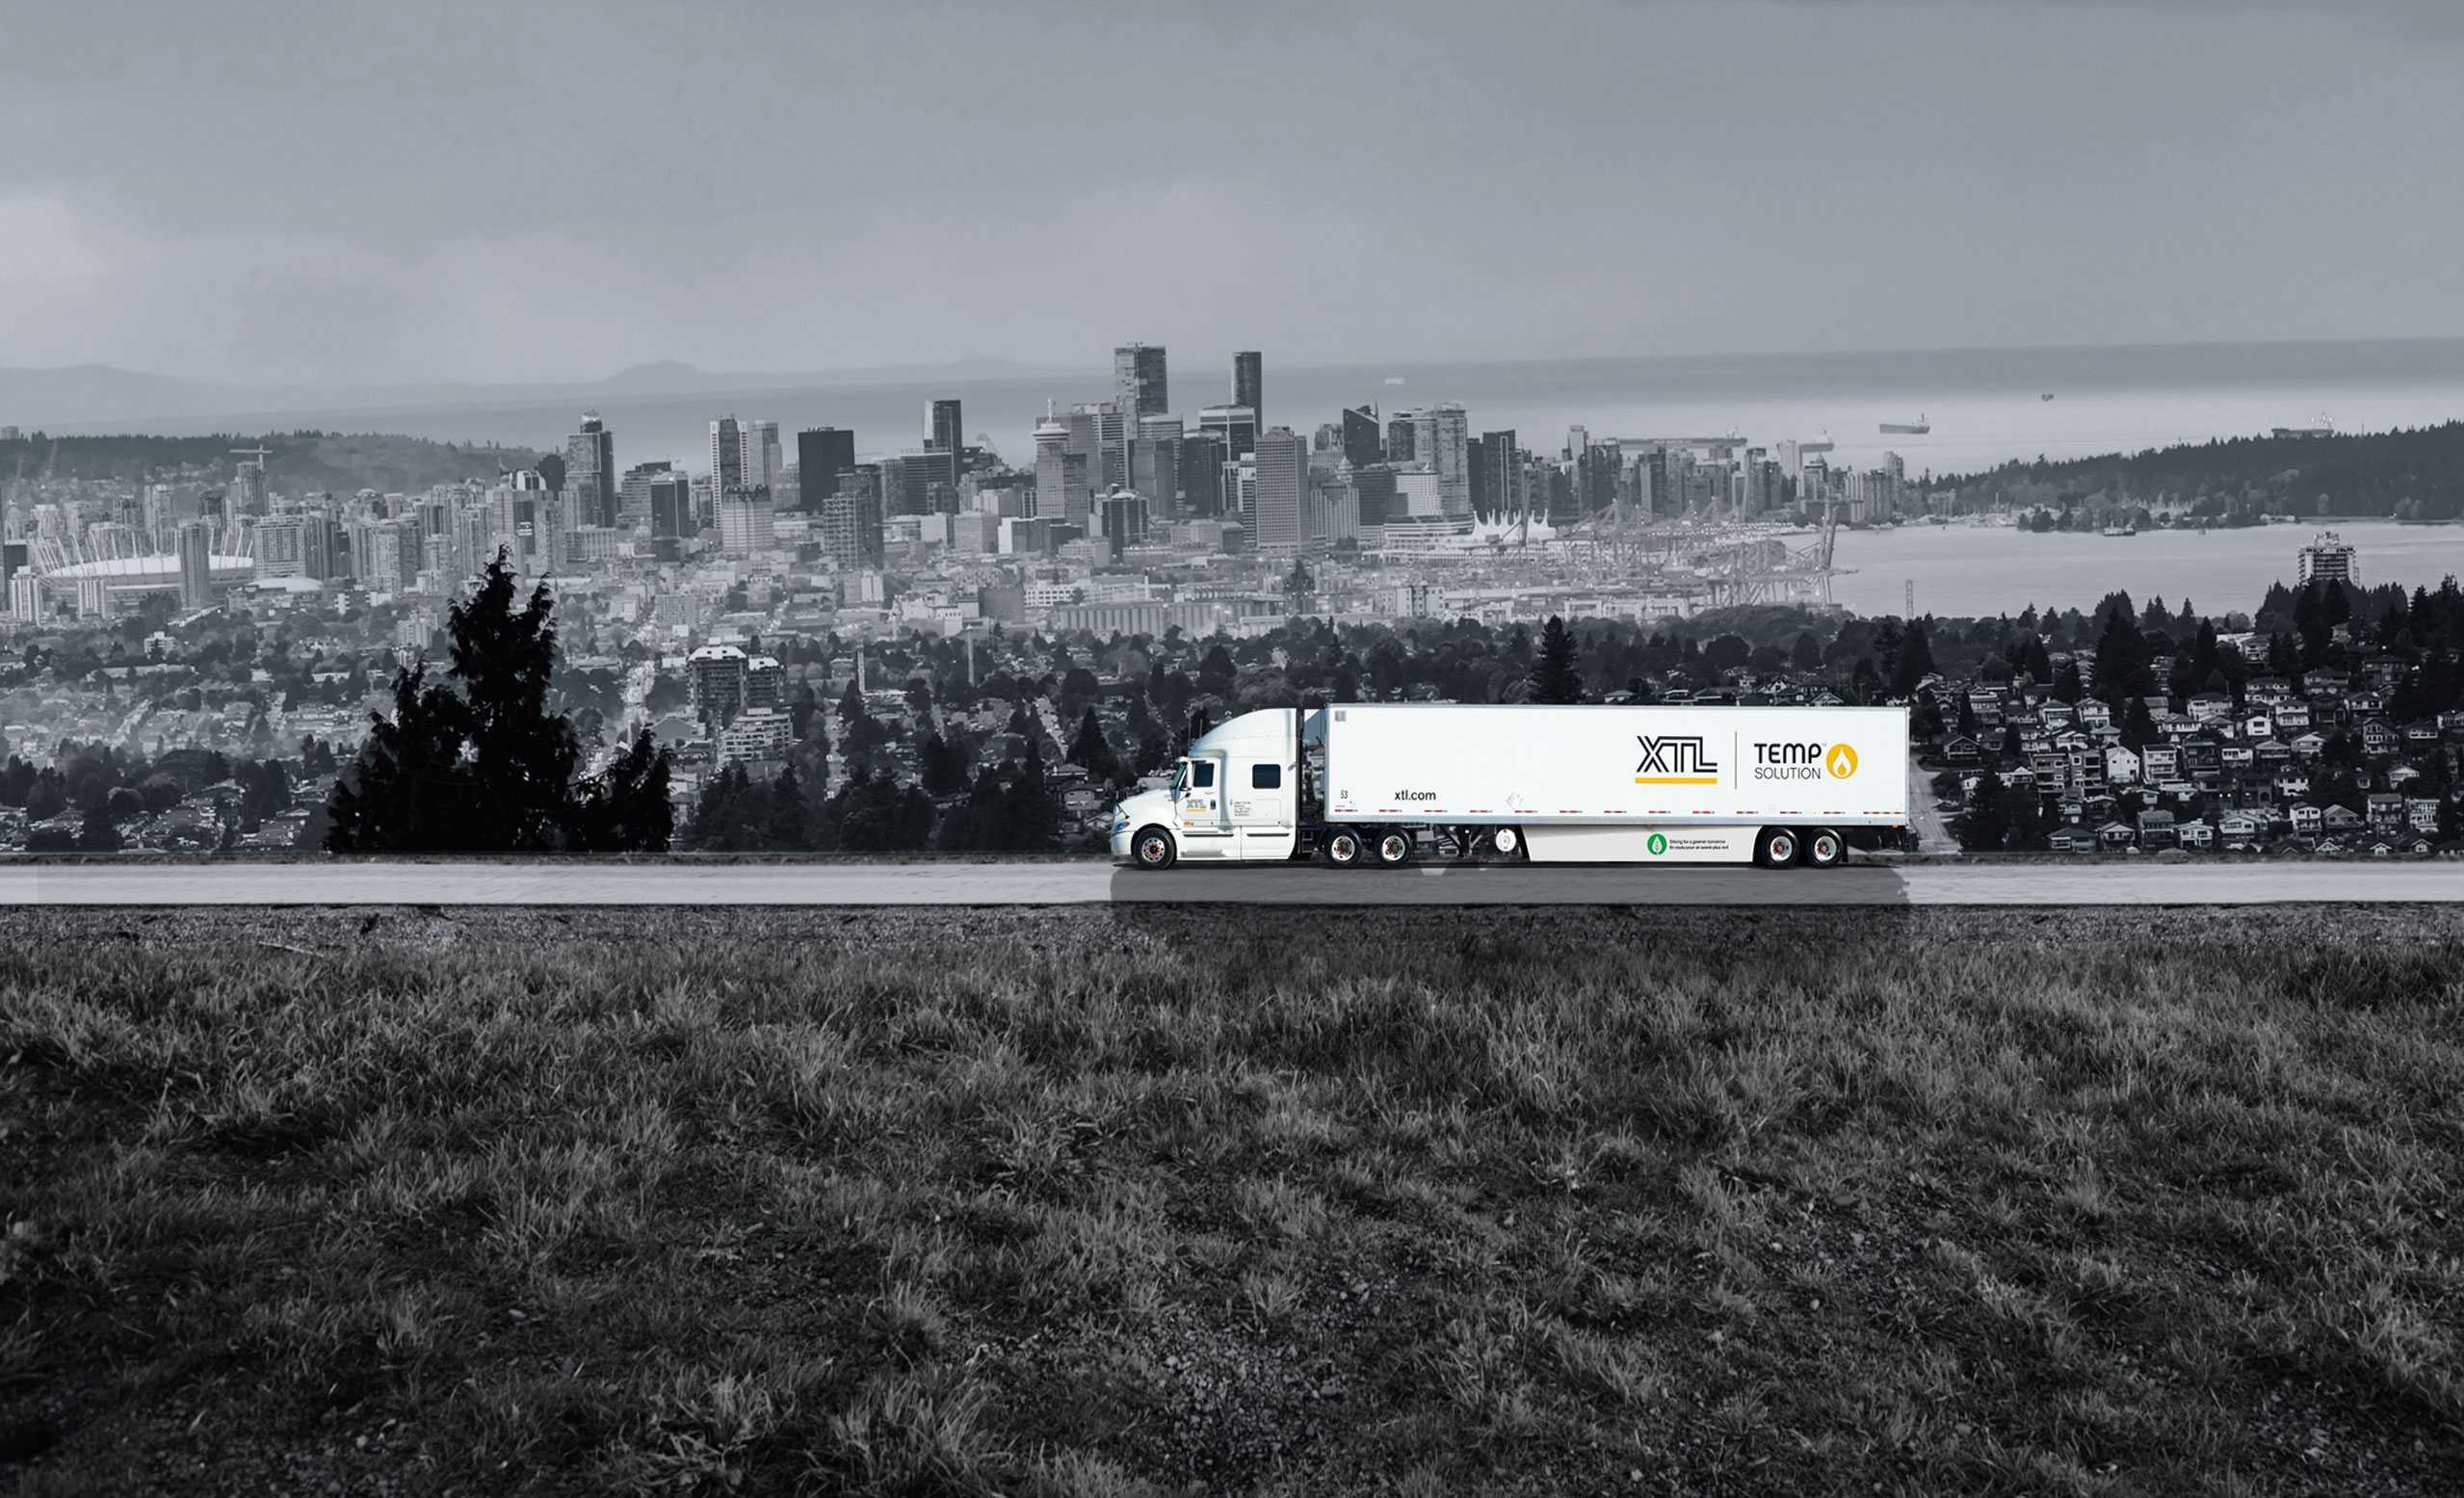 XTL transport truck and trailer driving on road, with city of Vancouver in the background